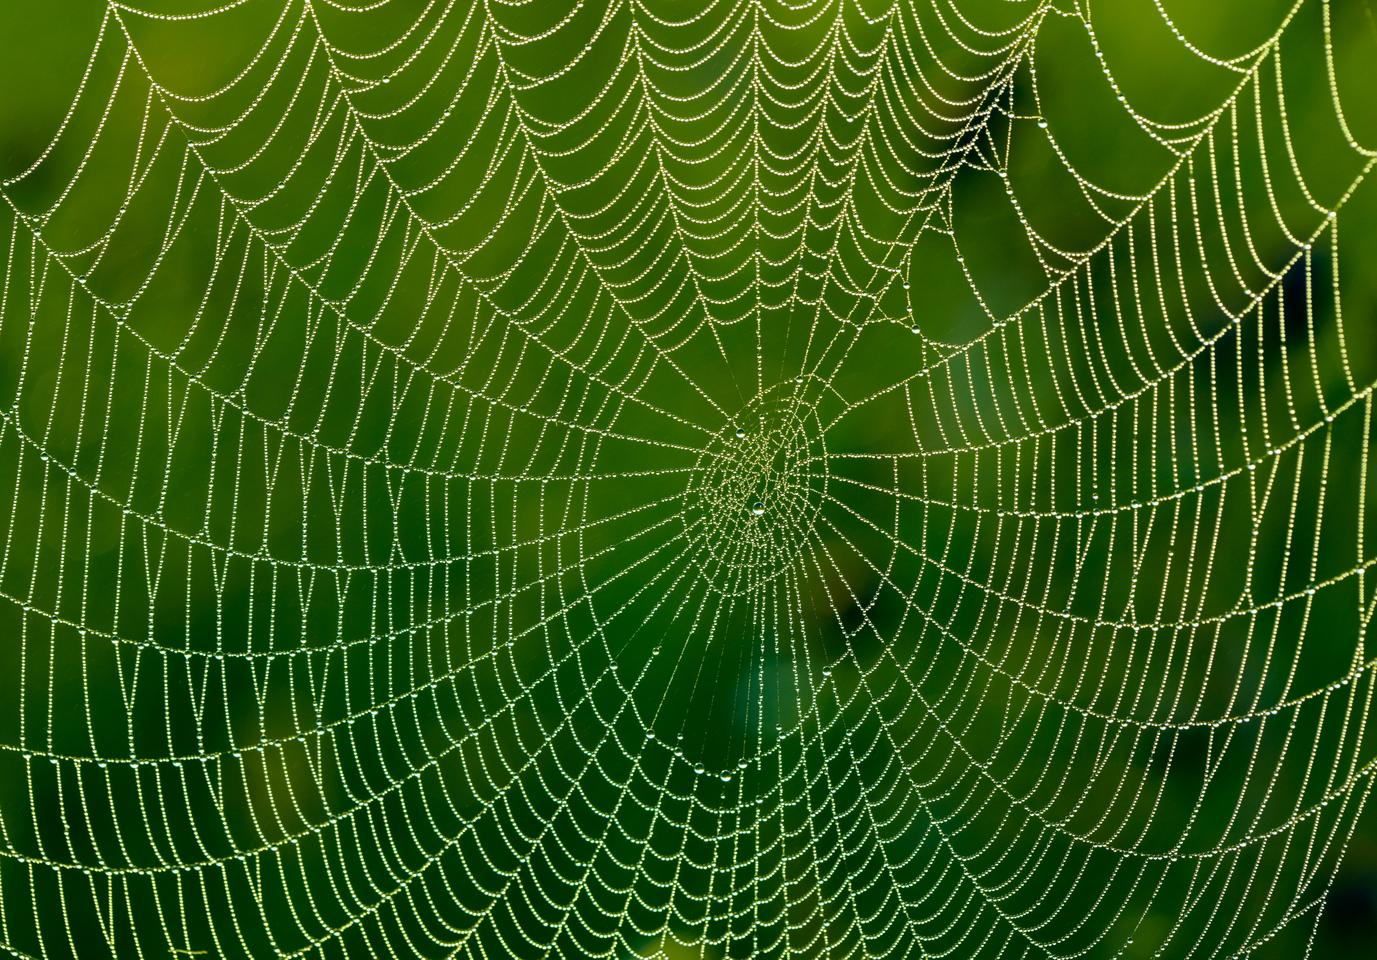 When spiders are given water laced with graphene or carbon nanotubes, the material gets passed into their silk